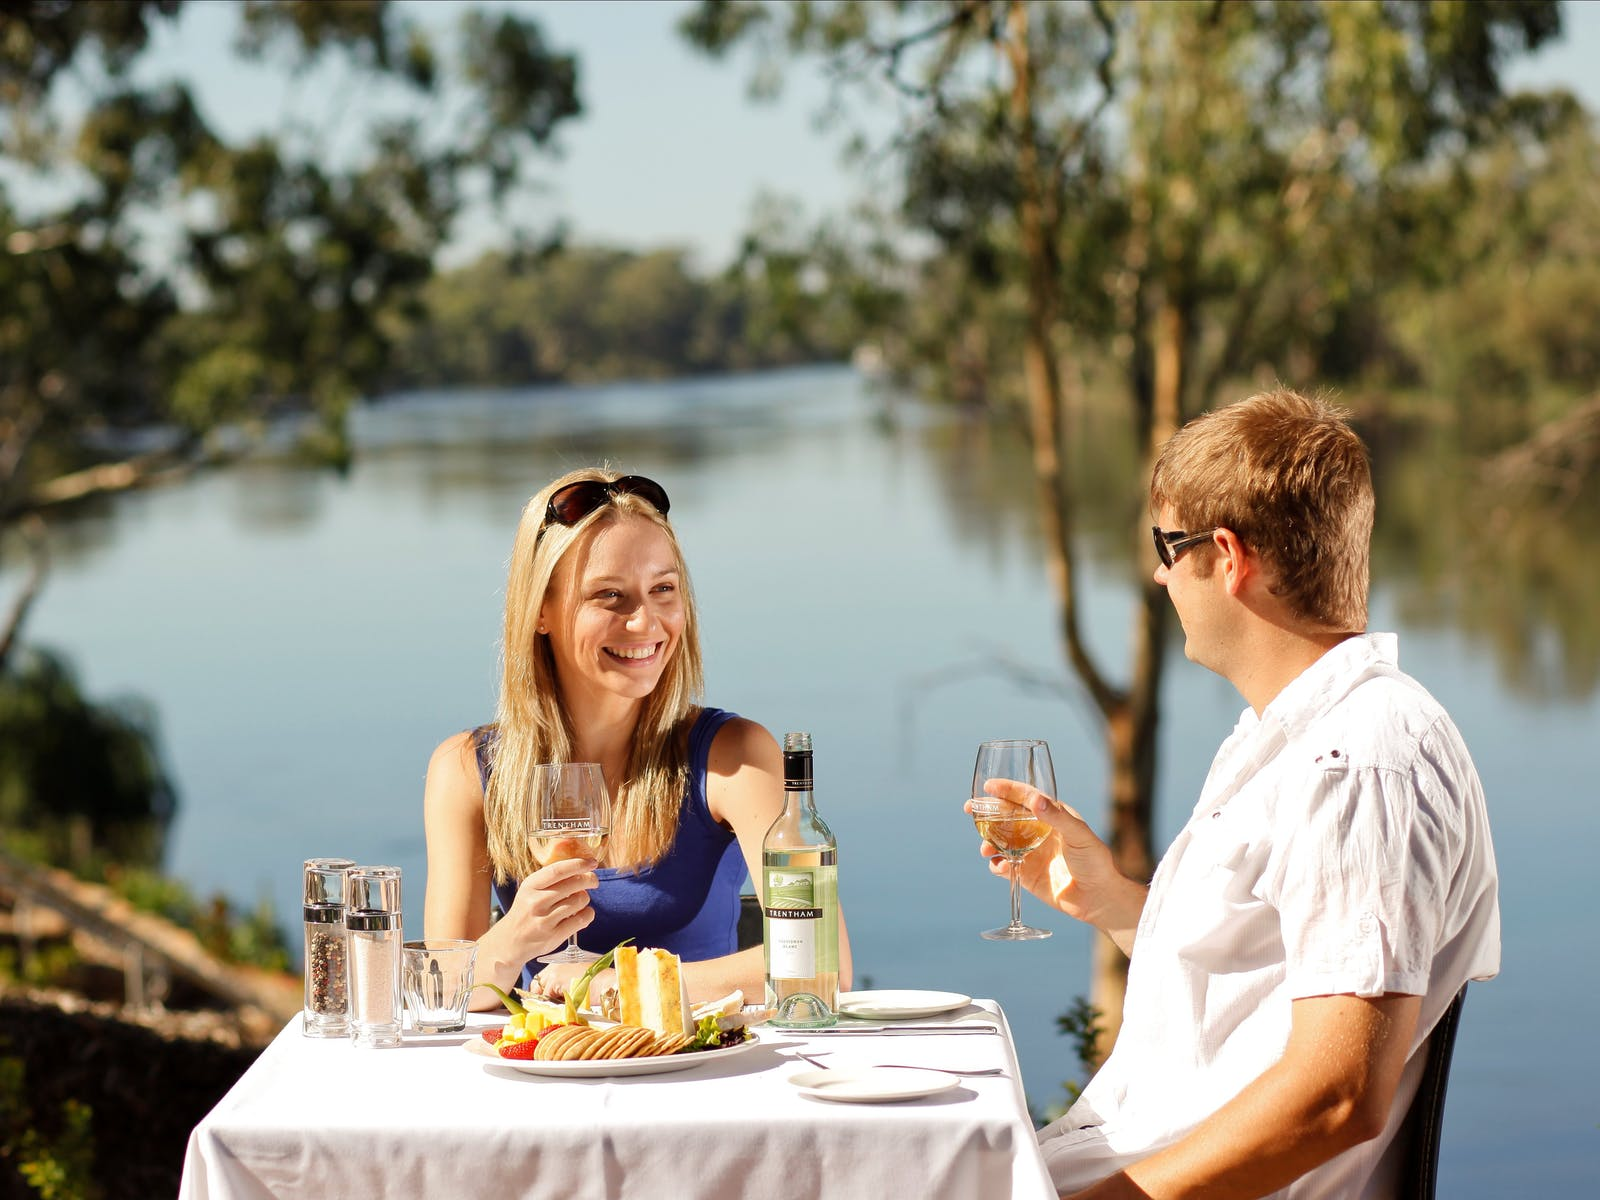 Dining on the riverbank